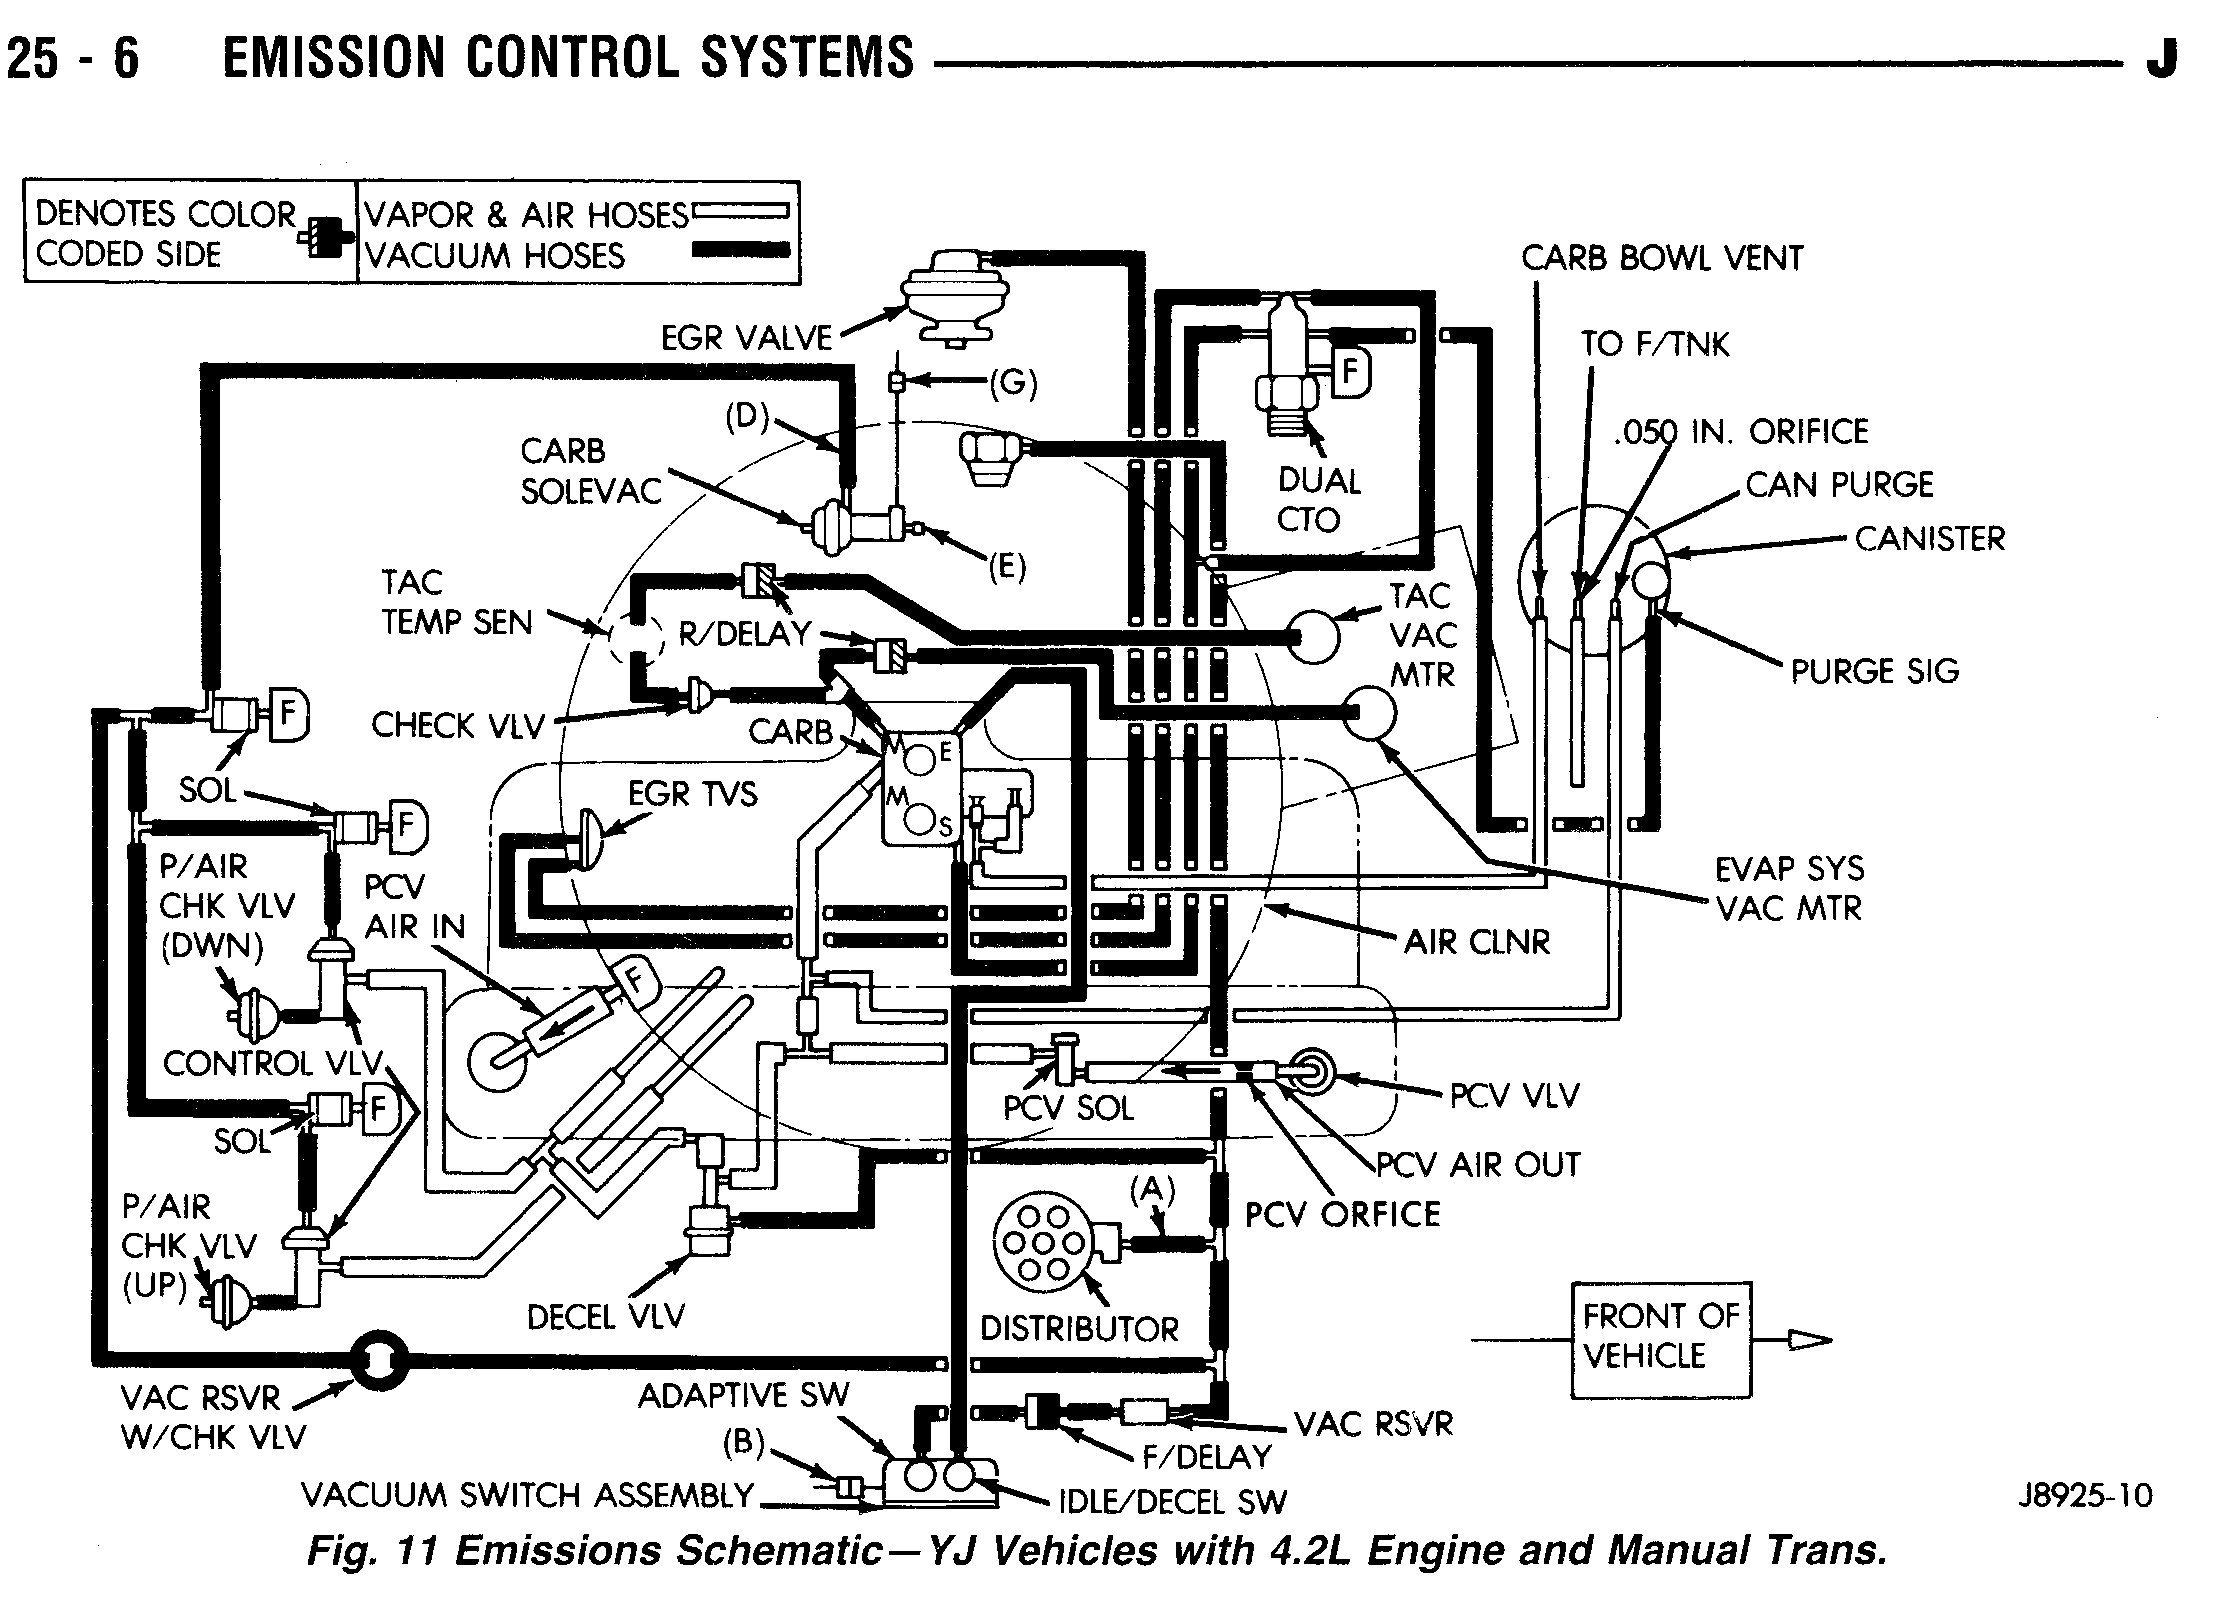 wiring diagram for 1990 jeep wrangler 1990 yj 4.2l gross polluter running rich - jeepforum.com